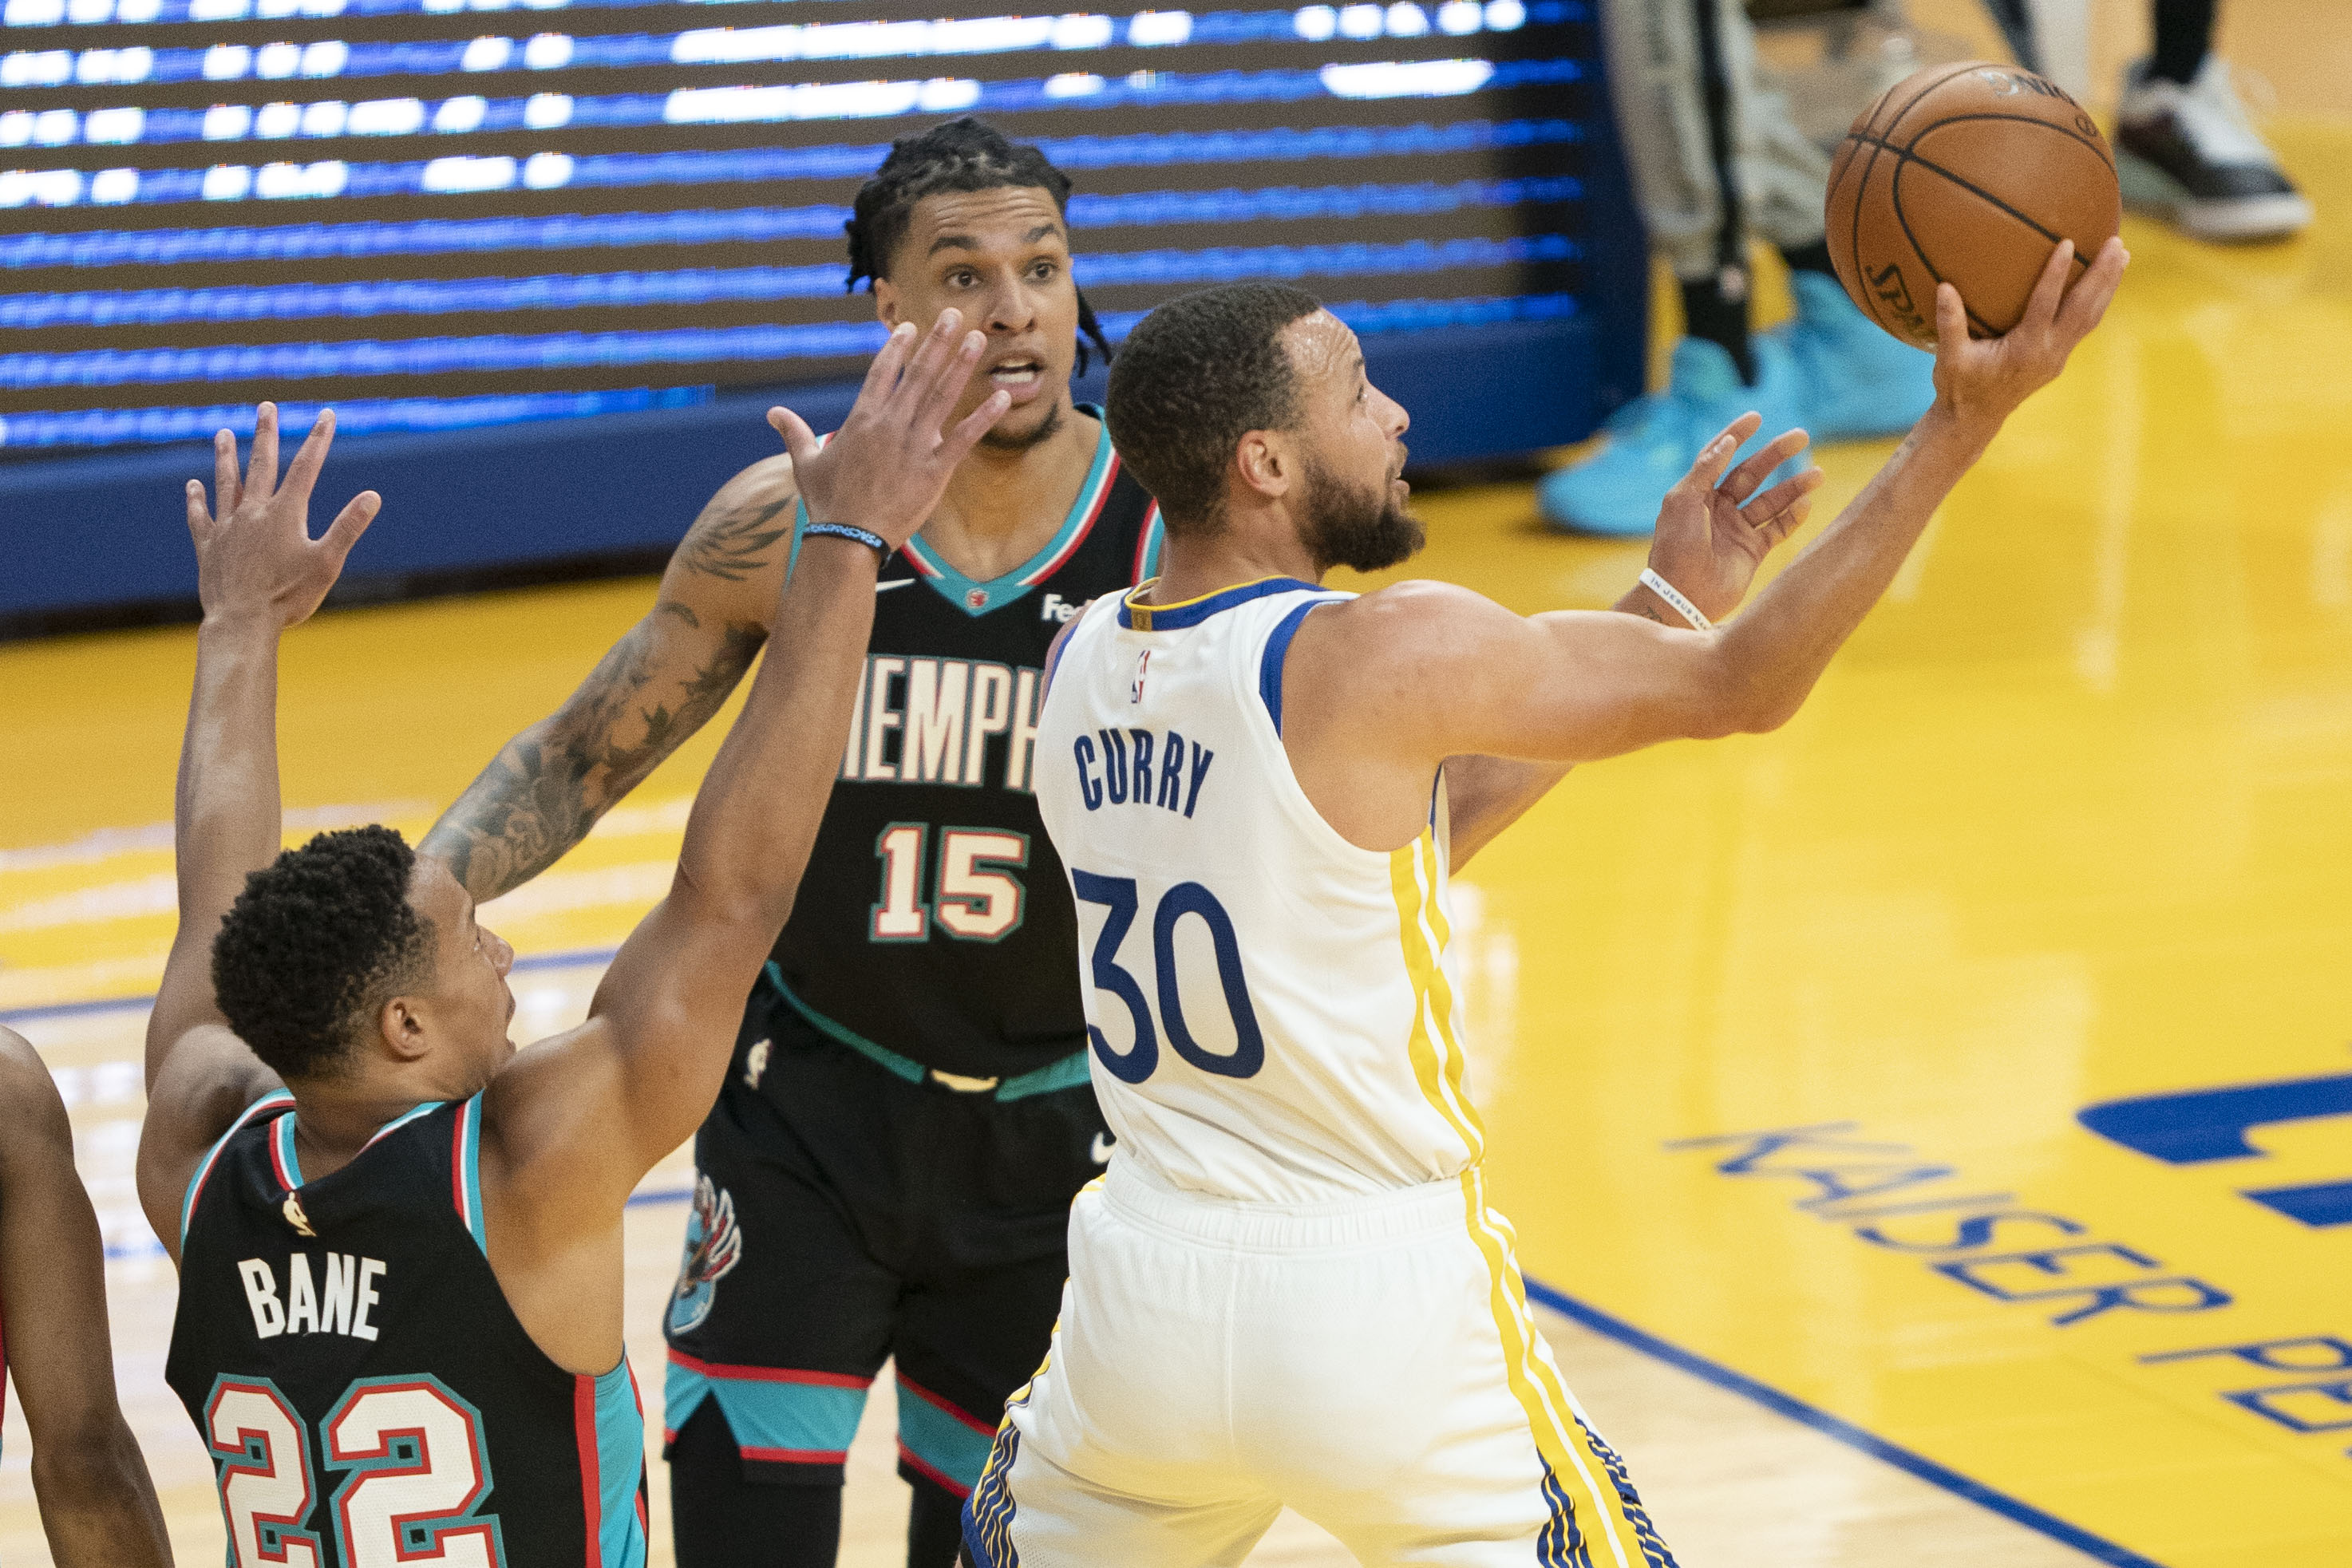 May 16, 2021; San Francisco, California, USA; Golden State Warriors guard Stephen Curry (30) shoots the basketball against Memphis Grizzlies guard Desmond Bane (22) and forward Brandon Clarke (15) during the first quarter at Chase Center. Mandatory Credit: Kyle Terada-USA TODAY Sports